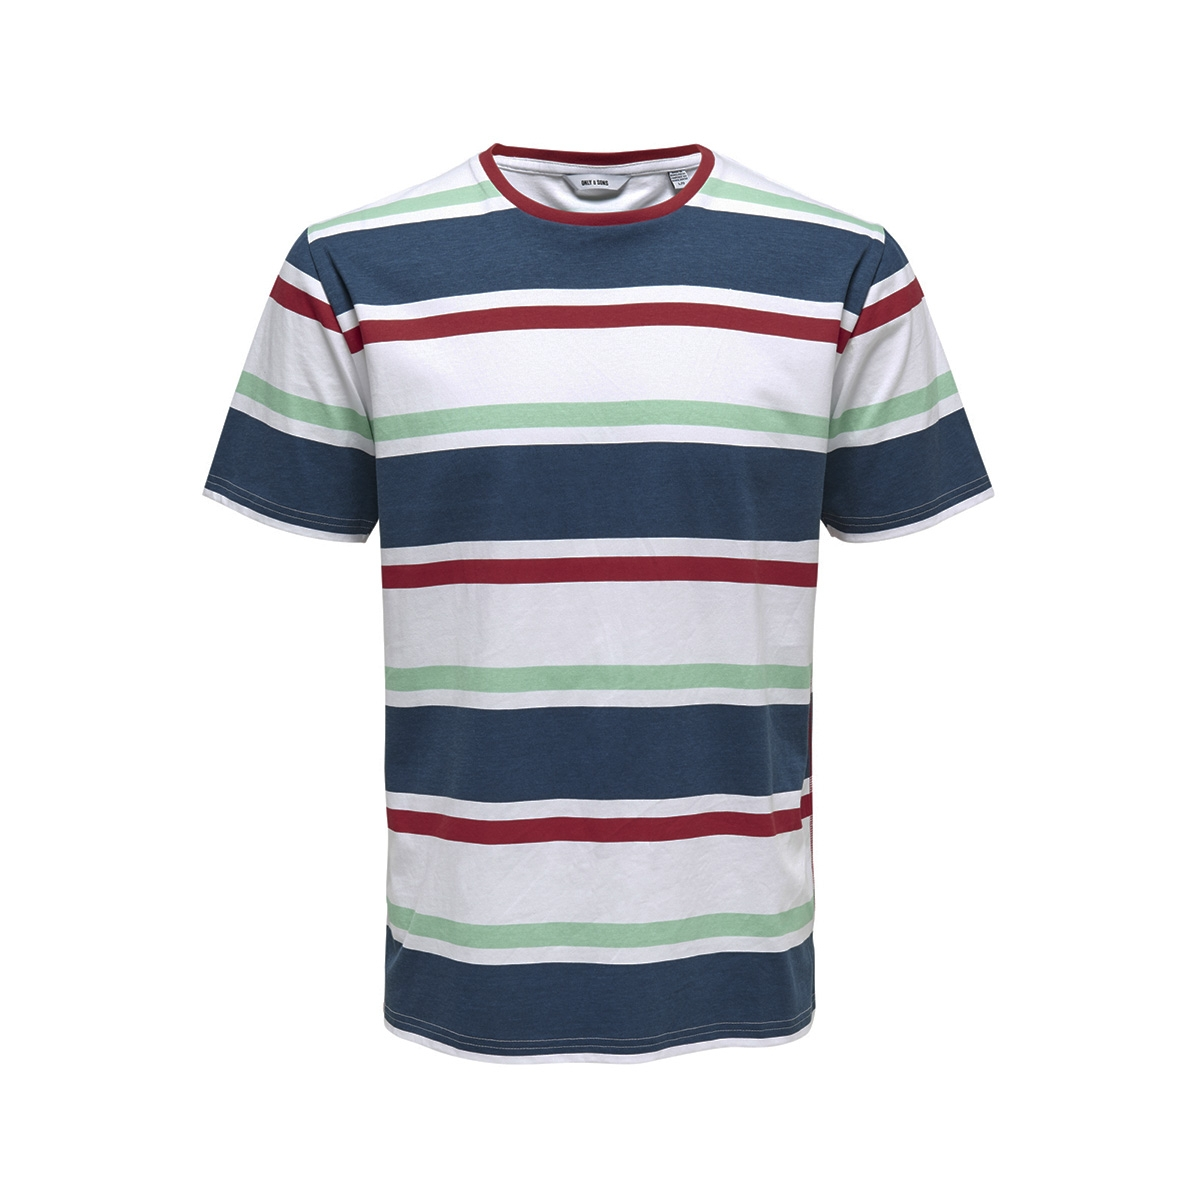 onslex ss reg striped tee 22012625 only & sons t-shirt white/red/navy/green